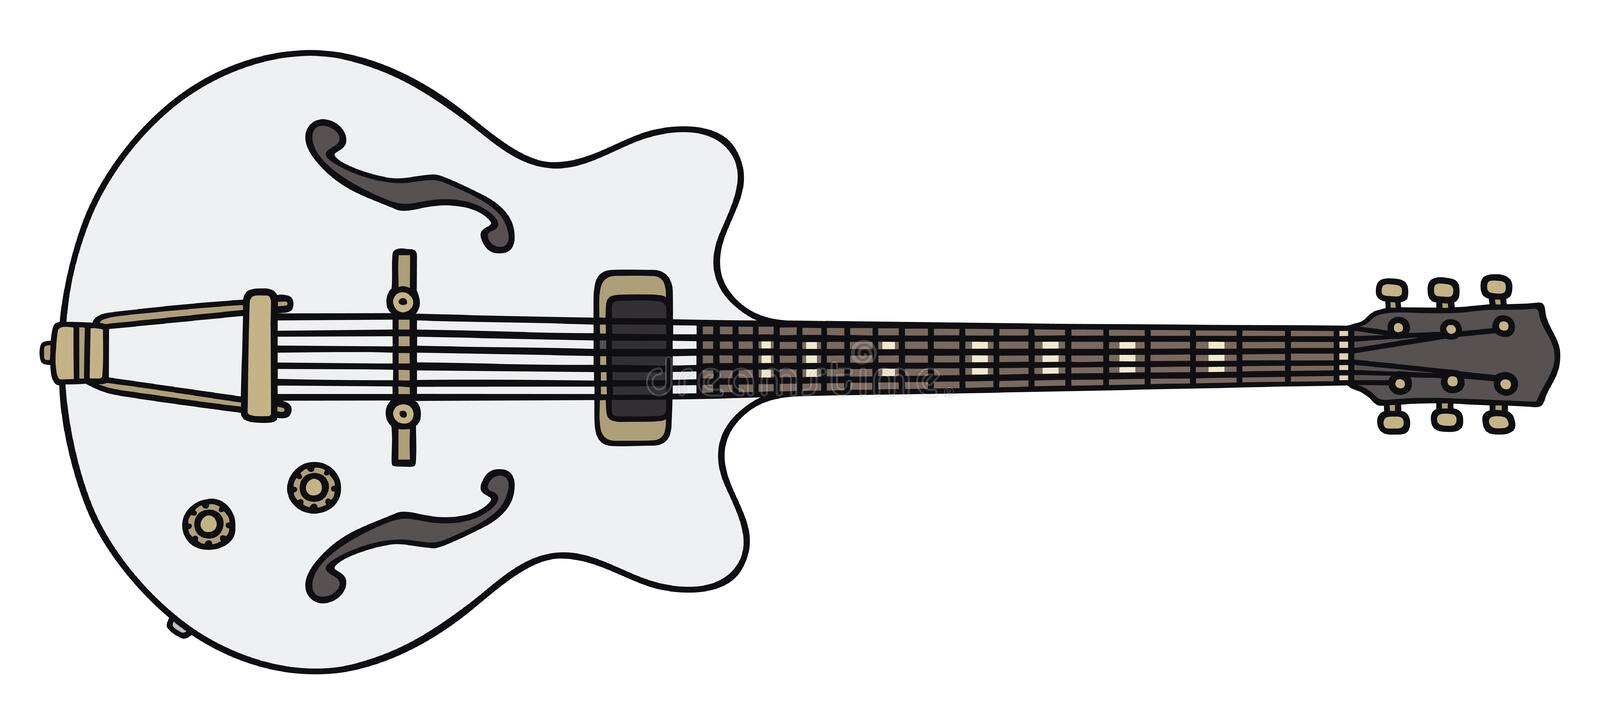 Old electric guitar stock illustration